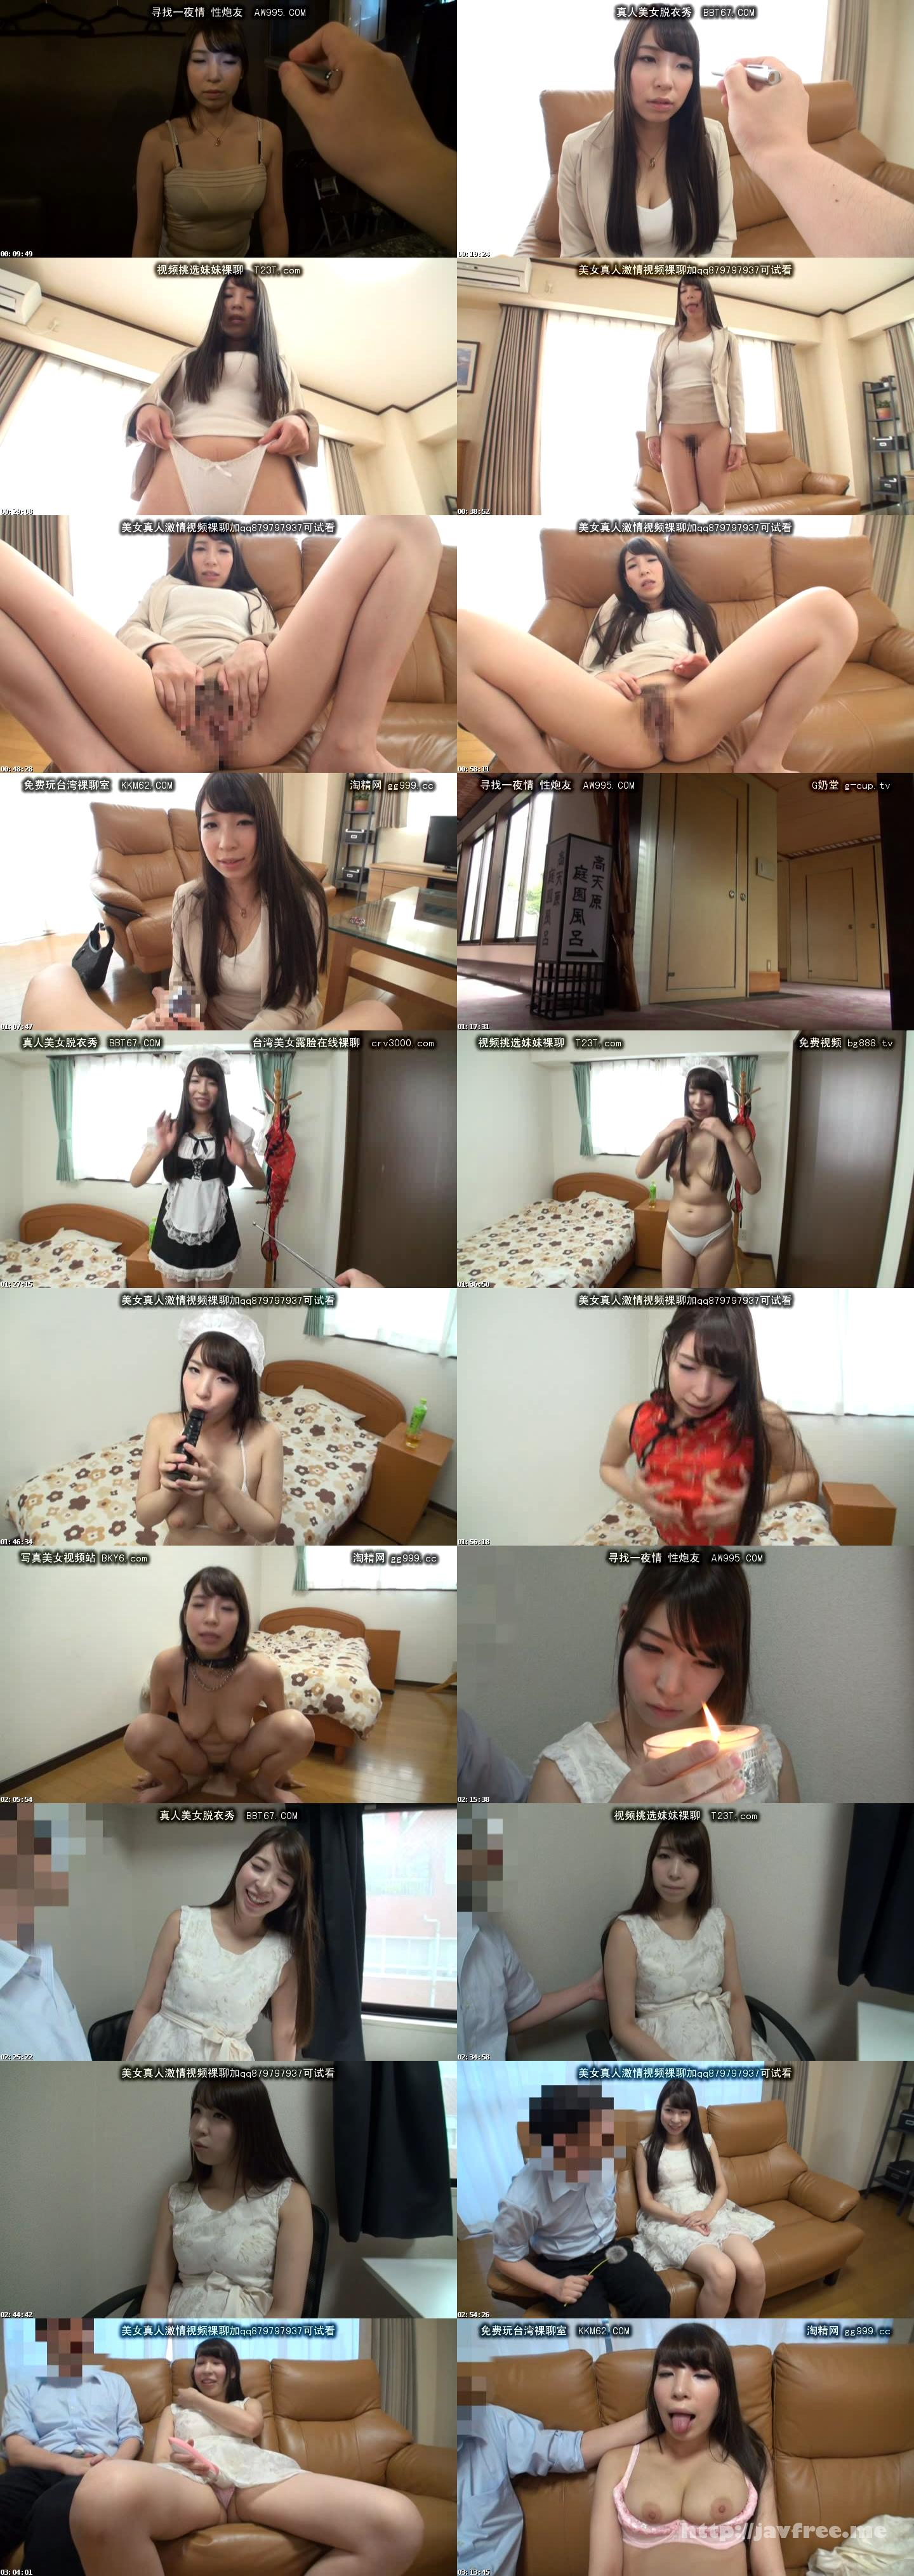 [ANX-067] 洗脳彼女-美桜 22才- - image ANX-067 on https://javfree.me